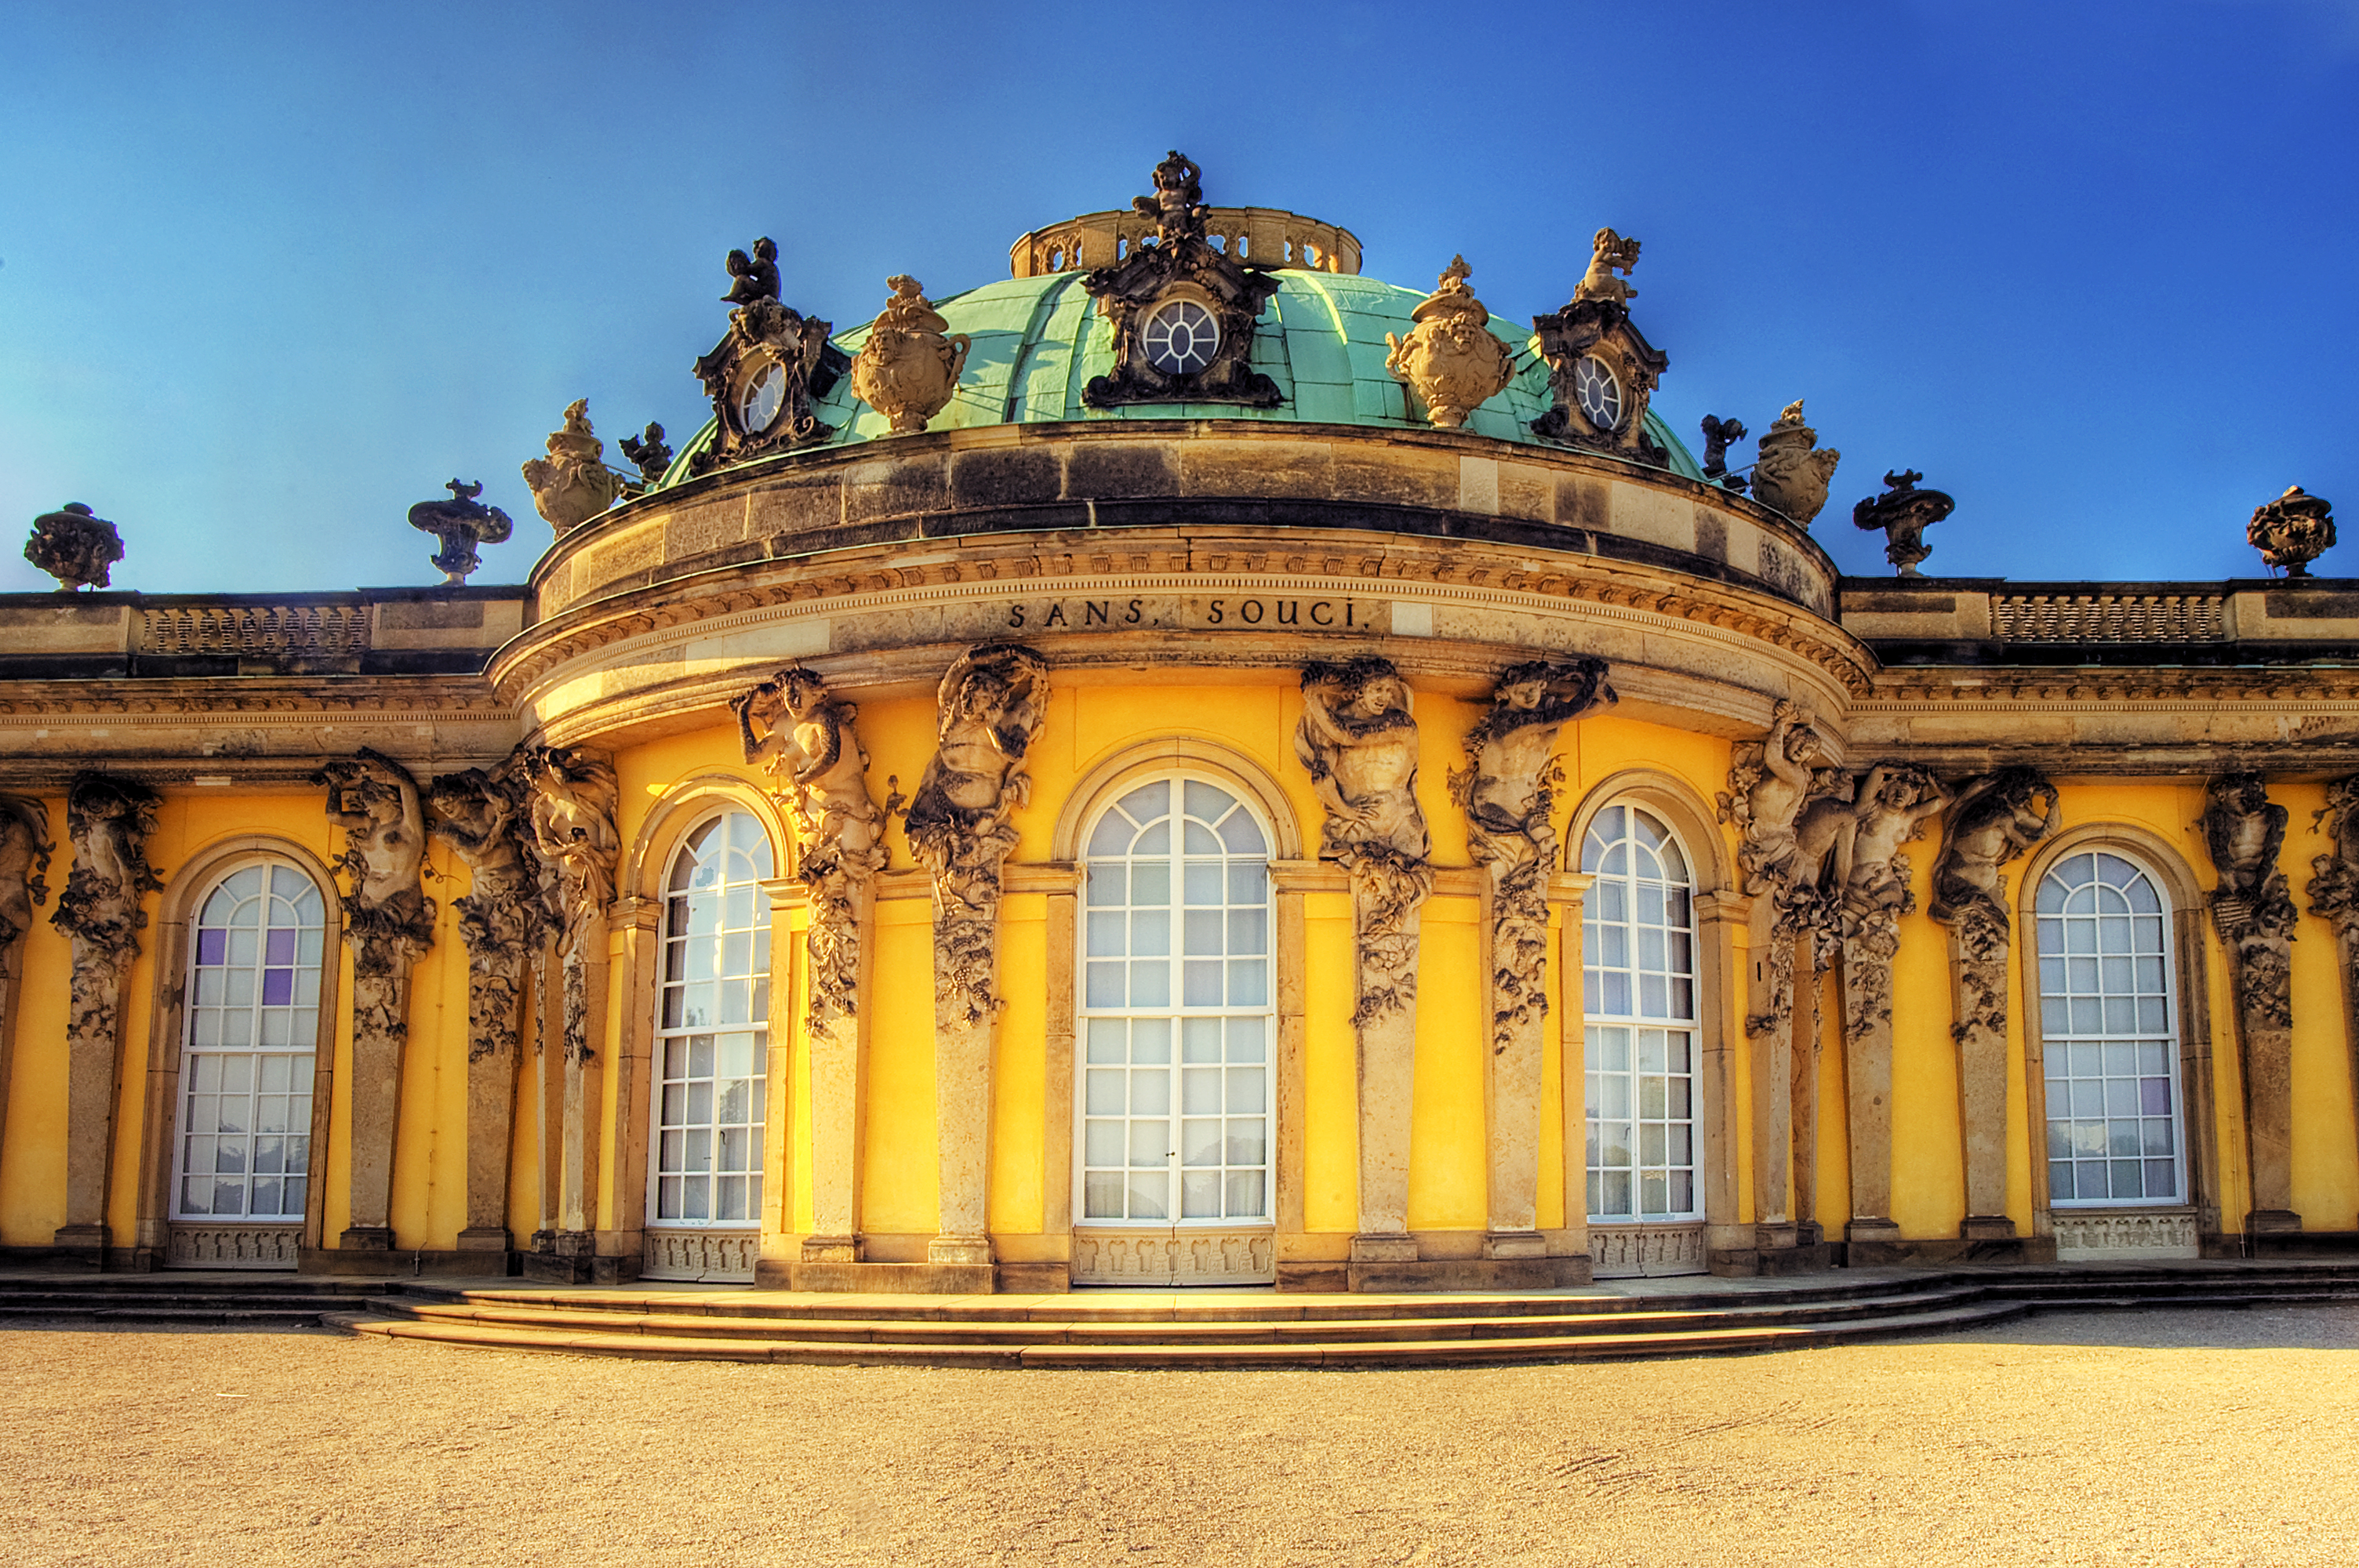 Sanssouci Palace, the former summer palace of Frederick the Great, today a World Heritage site